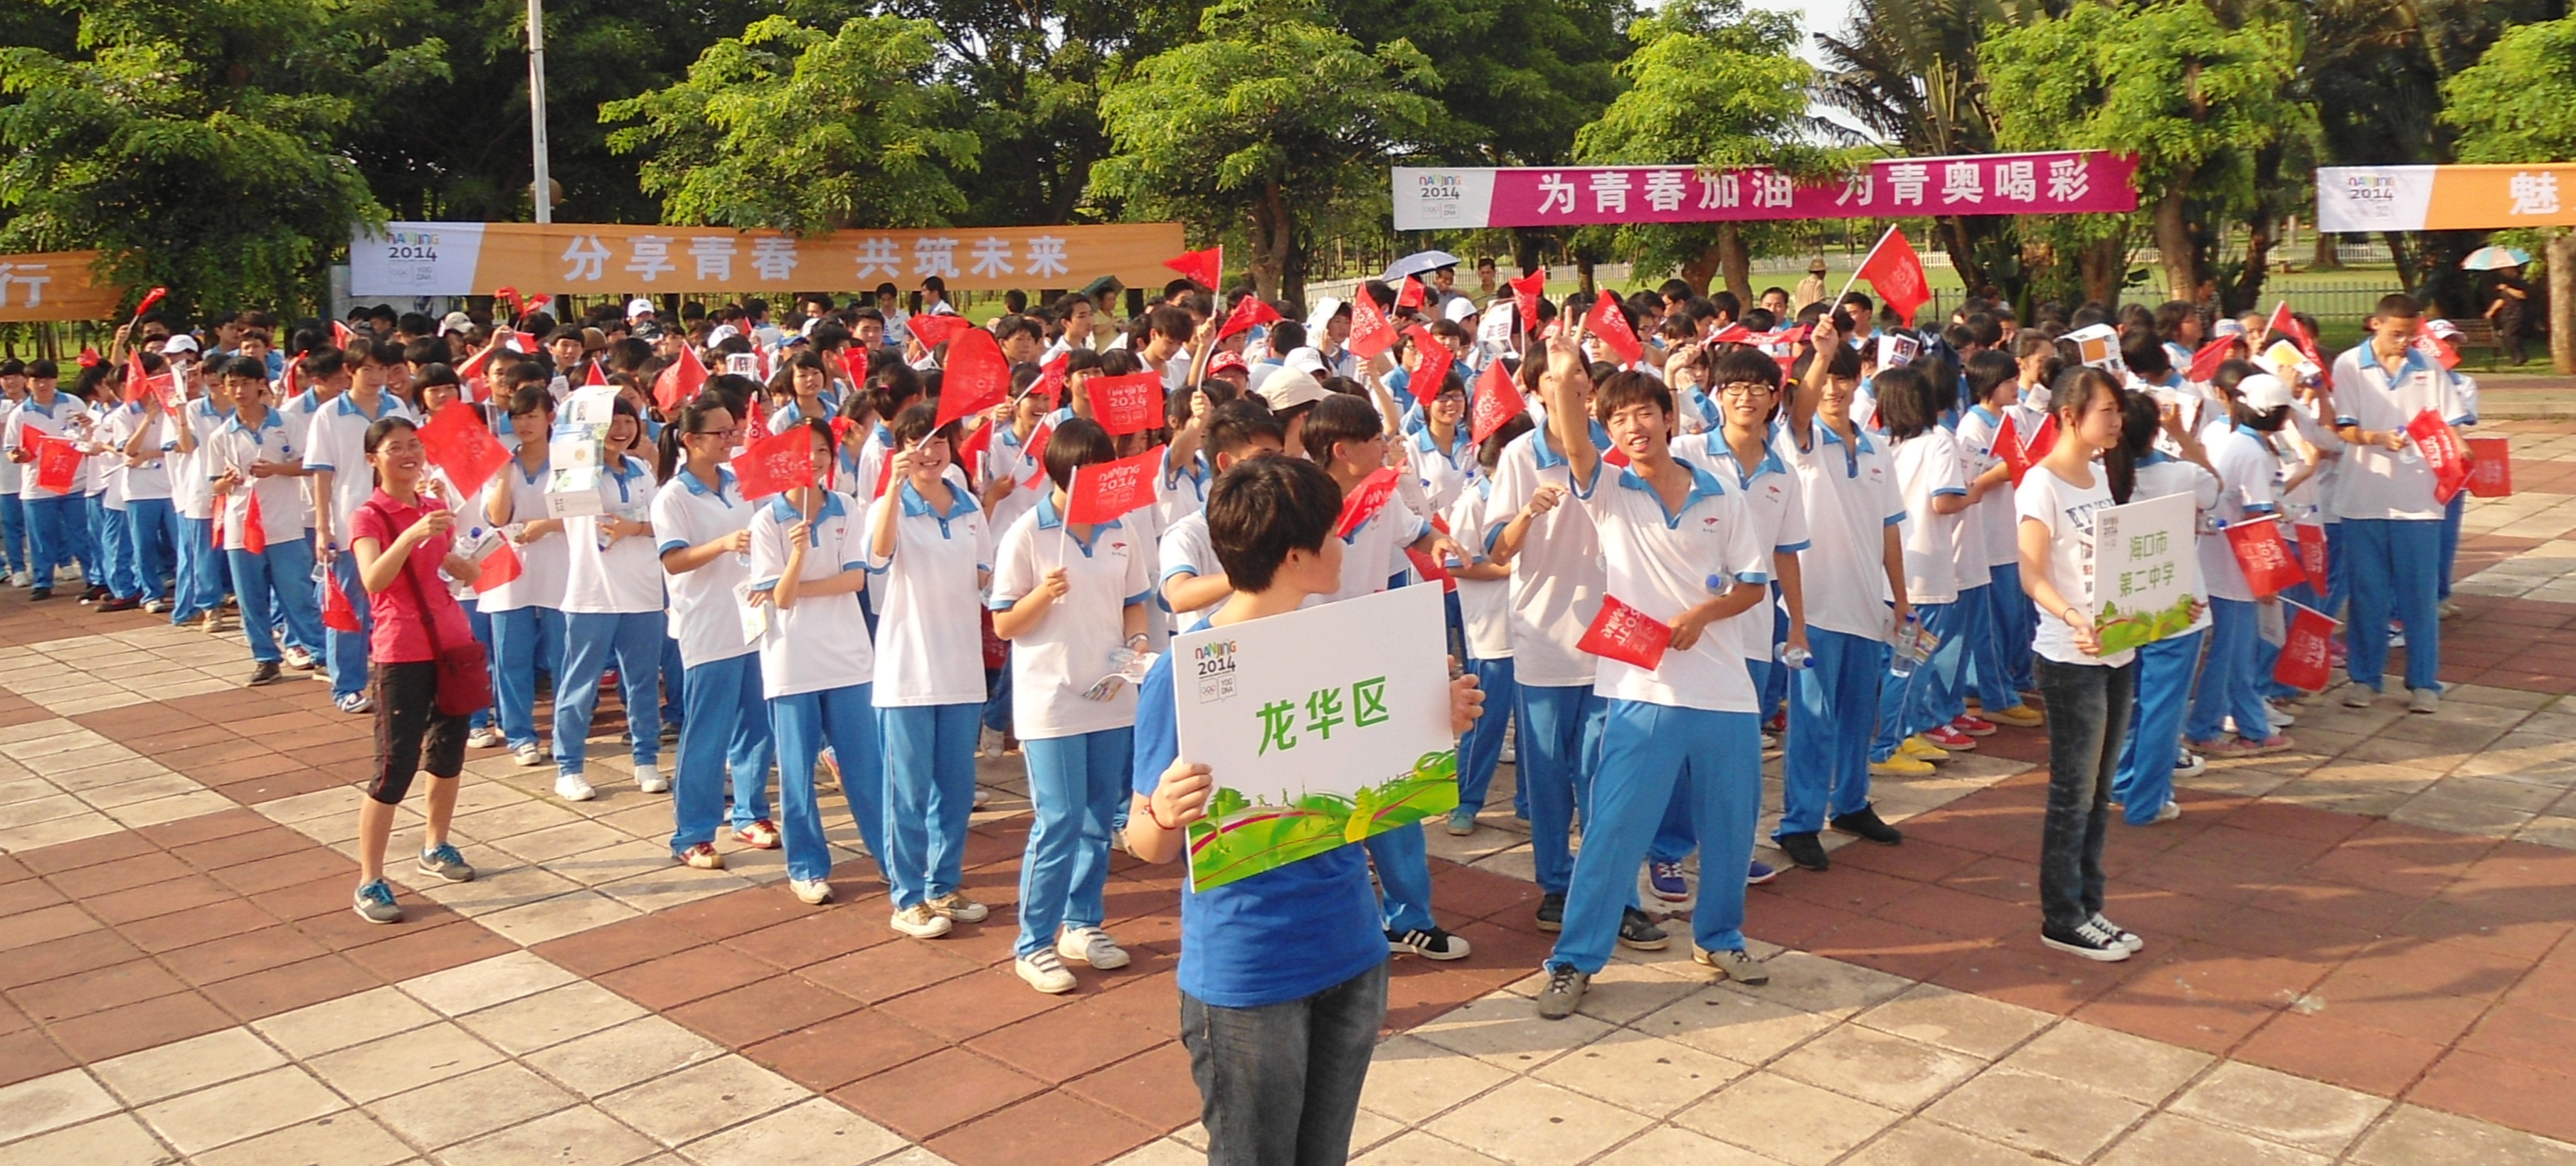 School uniforms in China - 03.jpg